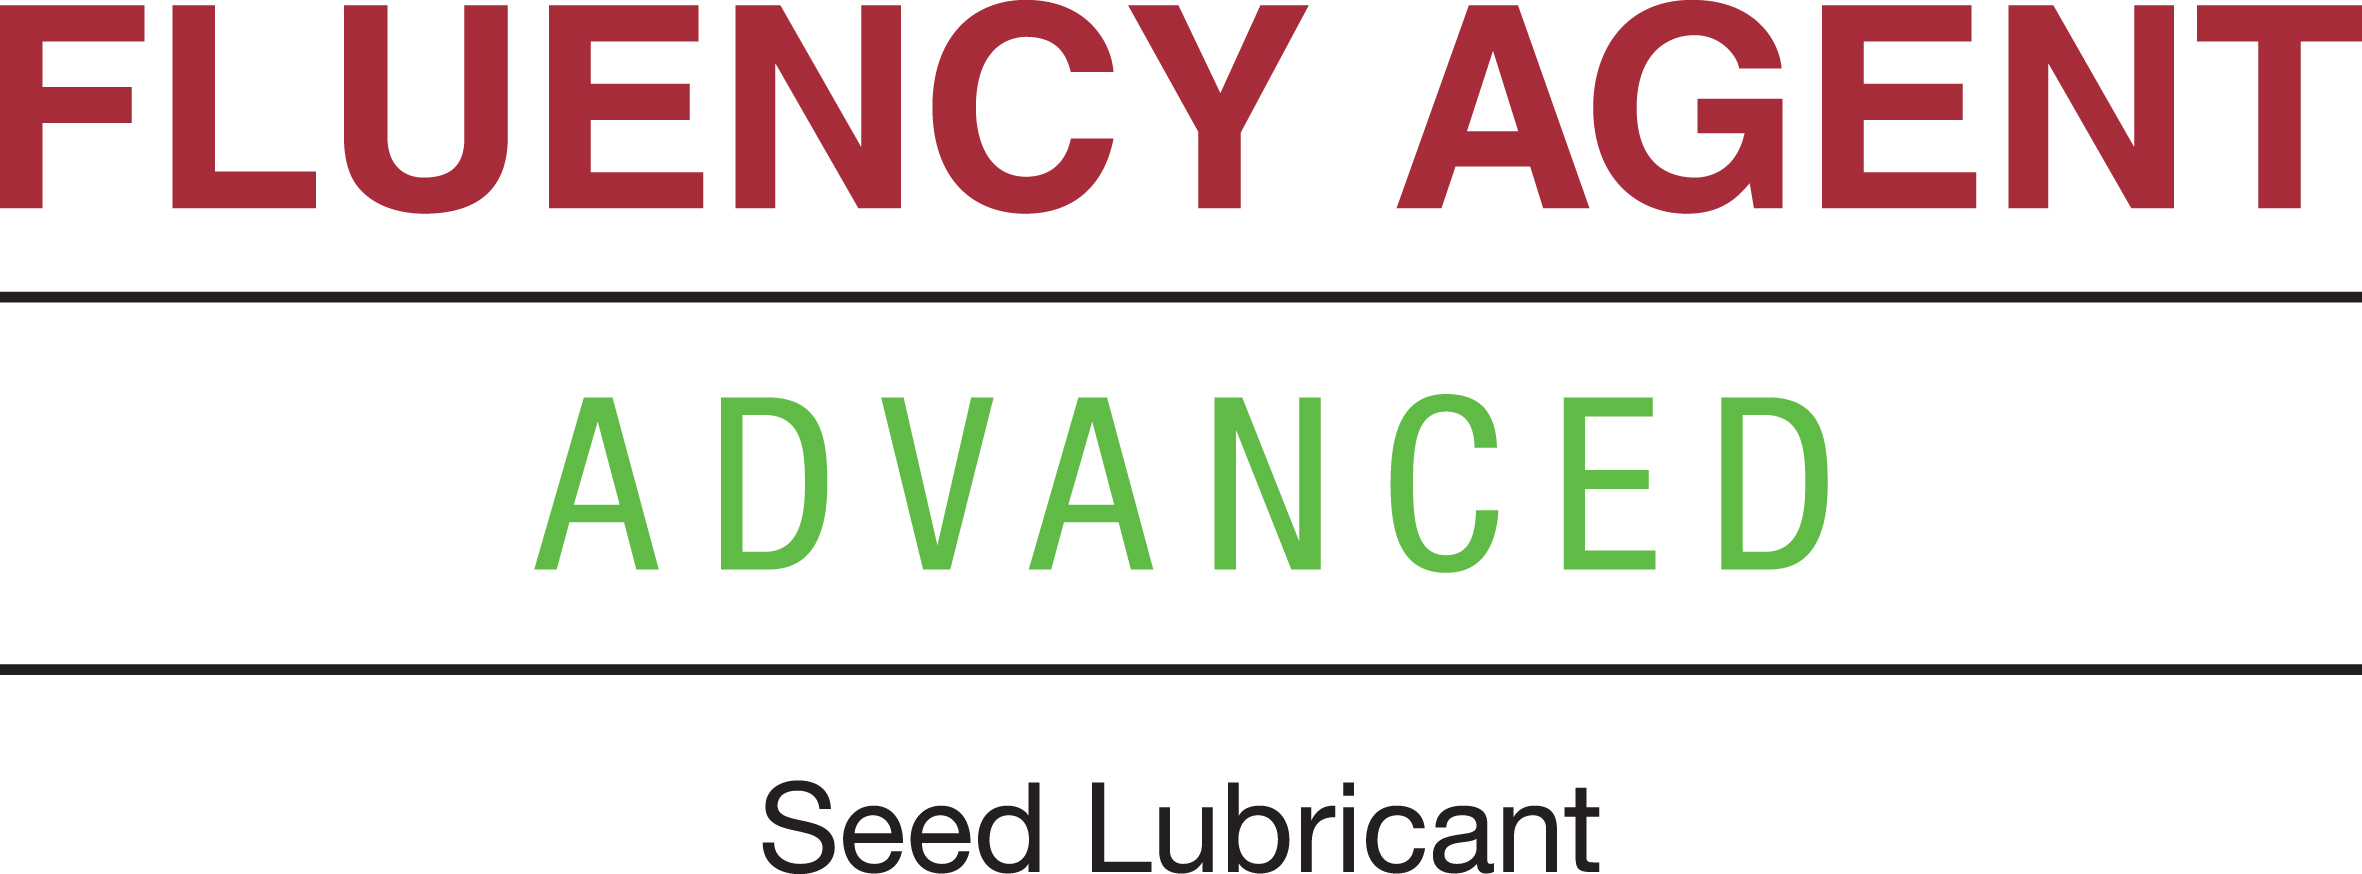 Fluency Agent Advanced - Seed Lubricant